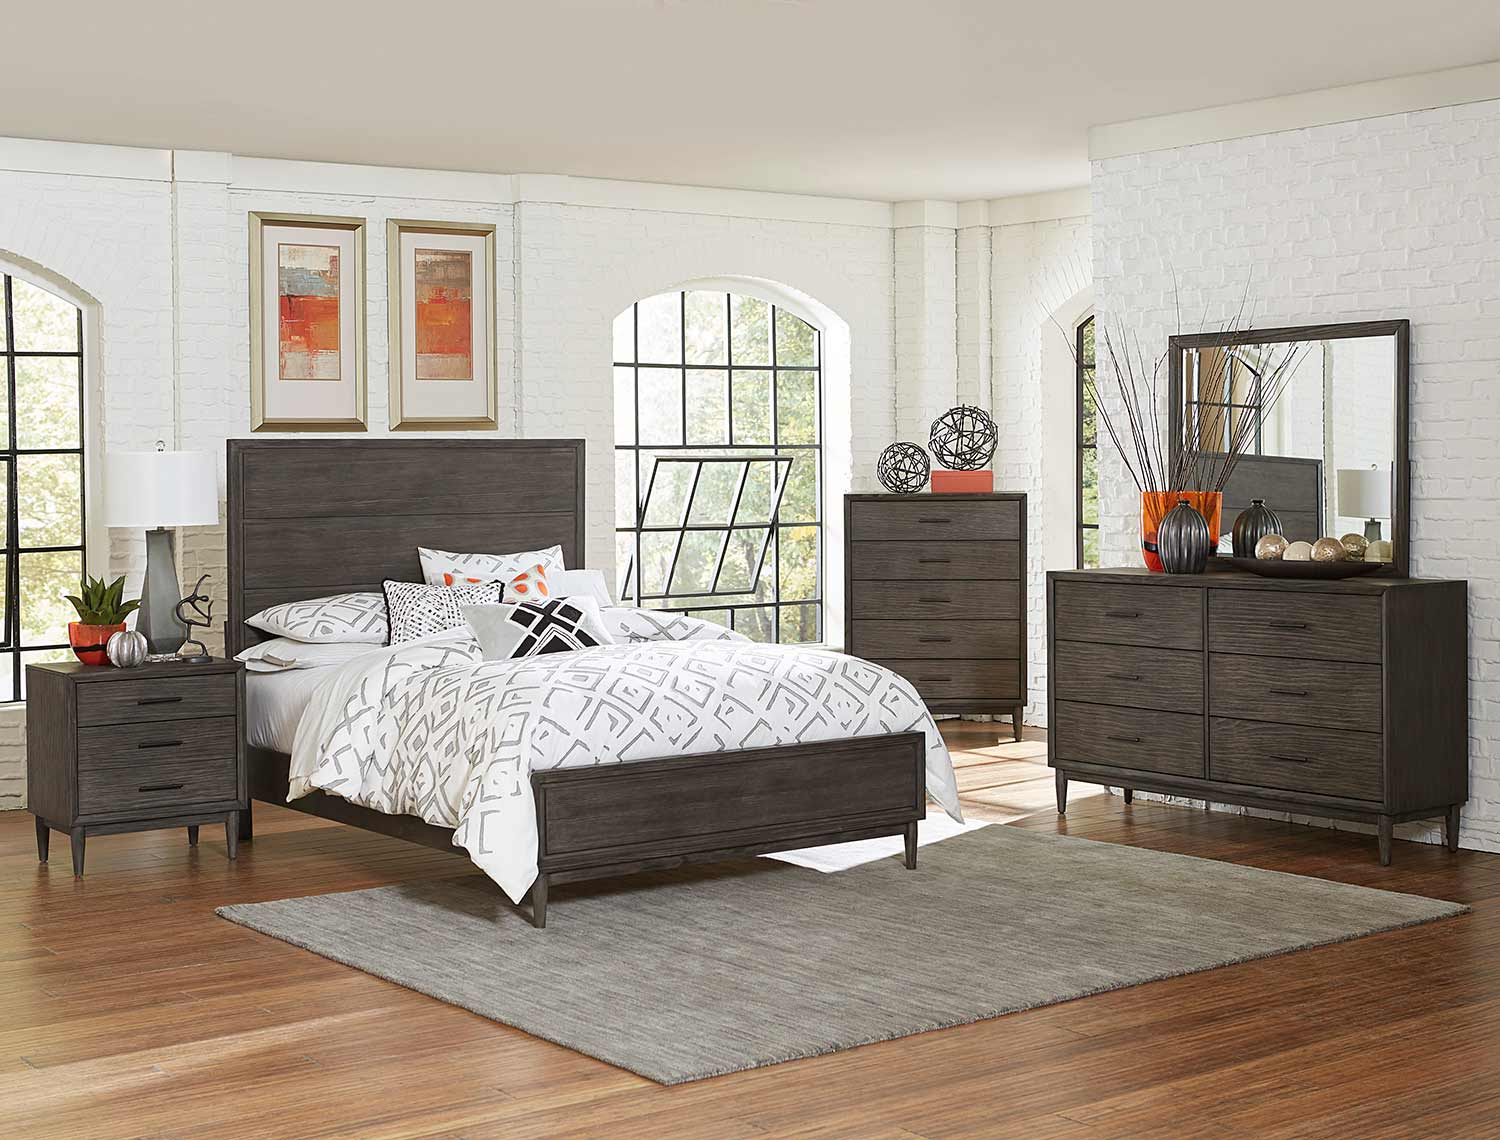 Homelegance Norhill Bedroom Set - Gray